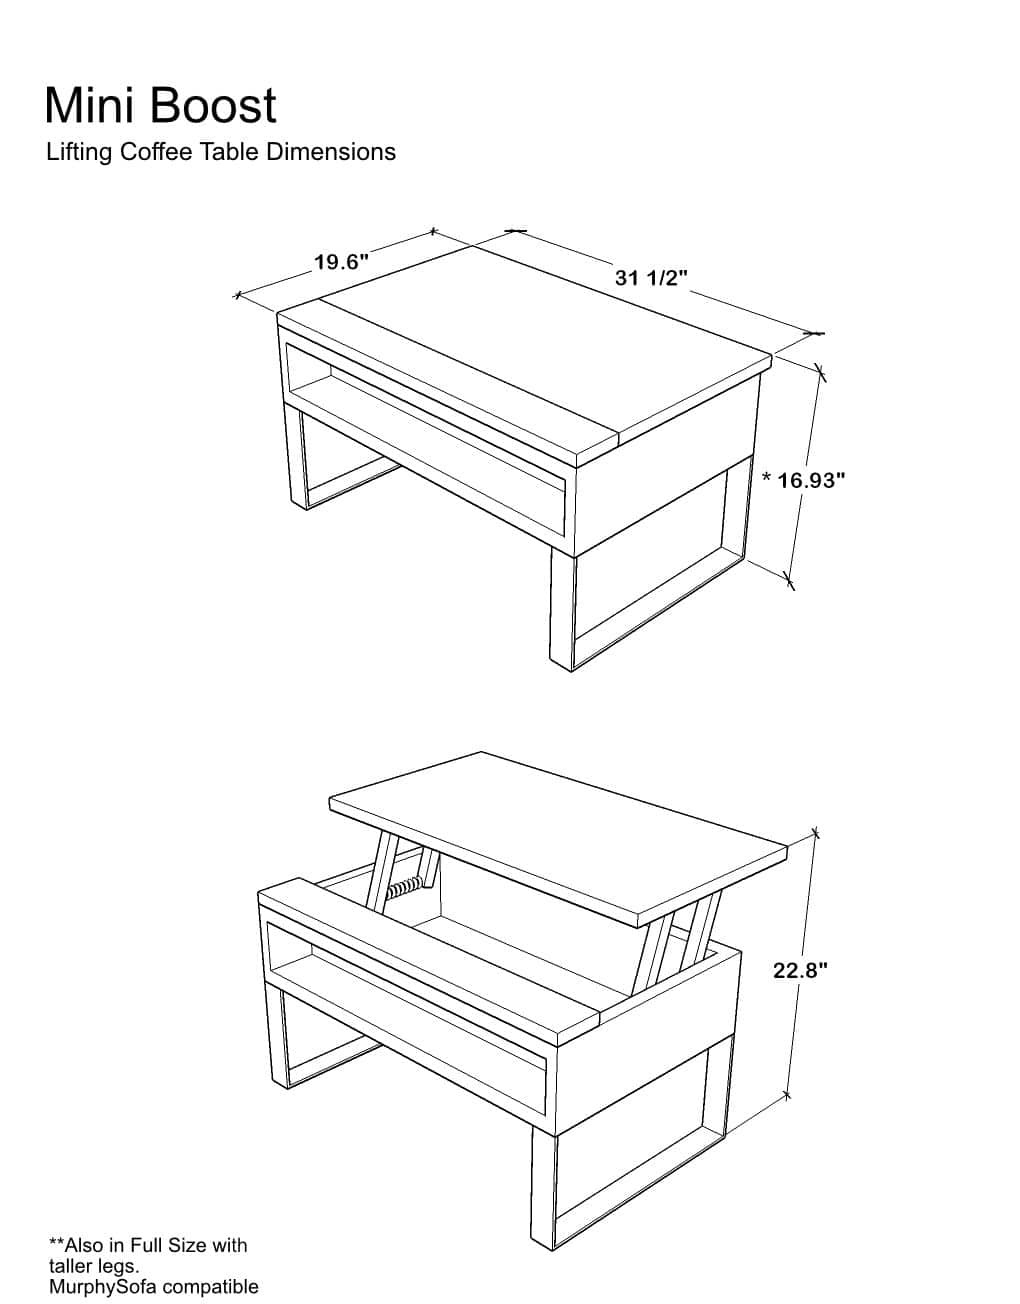 The Mini Boost Small Lifting Coffee Table Expand Furniture Folding Tables Smarter Wall Beds Space Savers